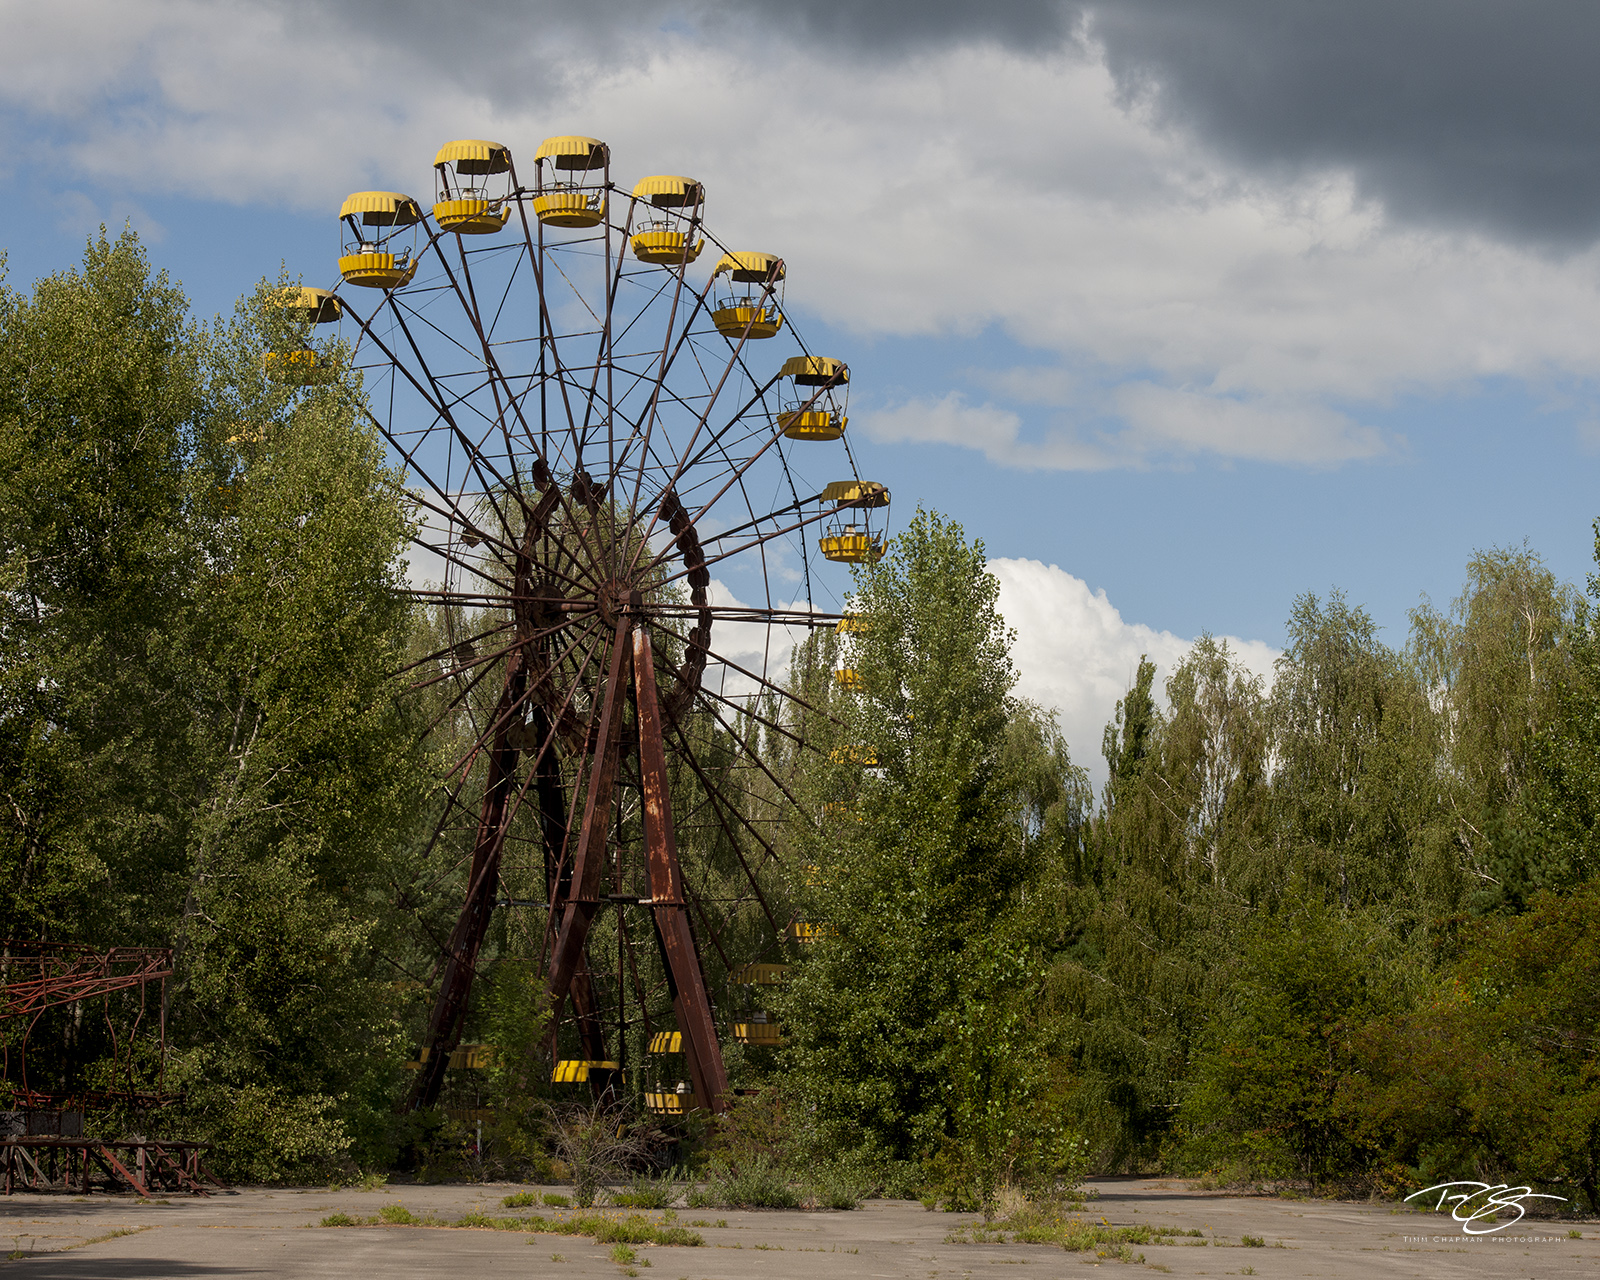 chernobyl, chornobyl, pripyat, exclusion zone, abandoned, forgotten, wasteland, radioactive, decay, rust, ferris wheel, amusement park, spooky, pripyat, yellow, fair, state fair, Not Amused, mold, photo